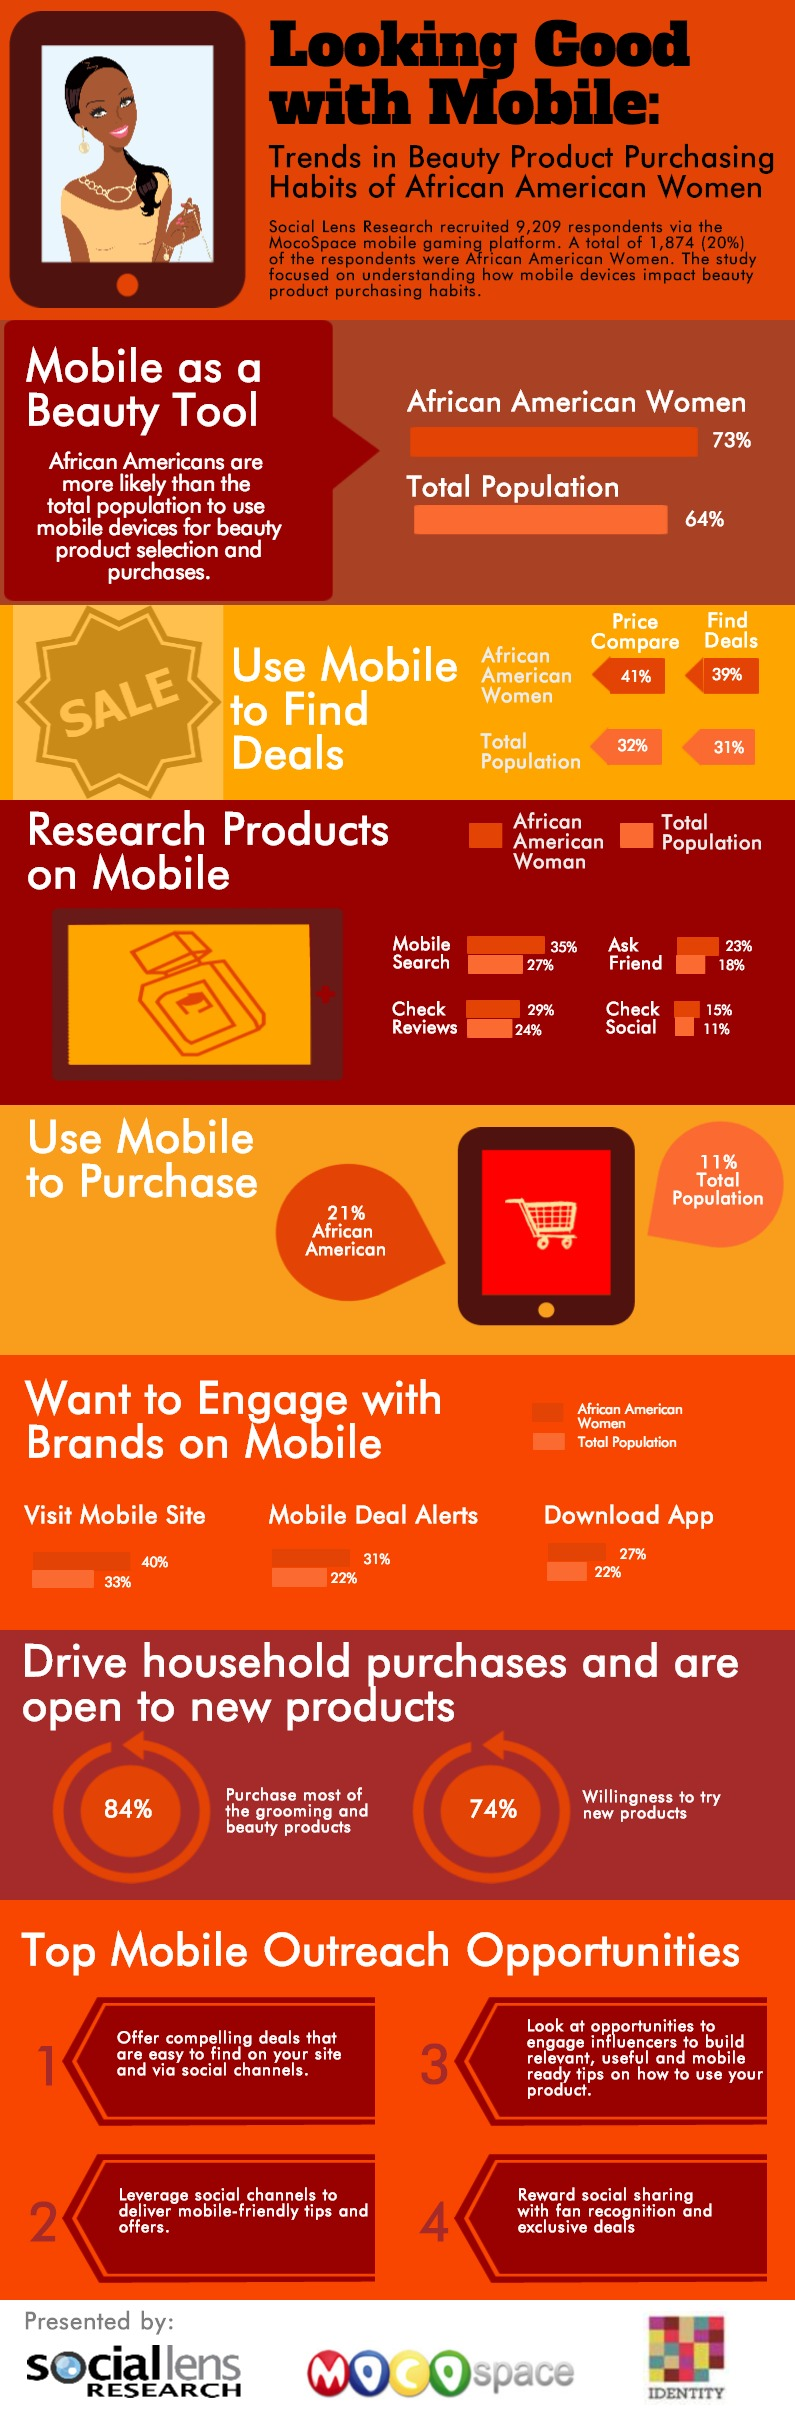 Looking Good with Mobile: Trends in the Beauty Purchasing Habits of African American Women (Infographic)